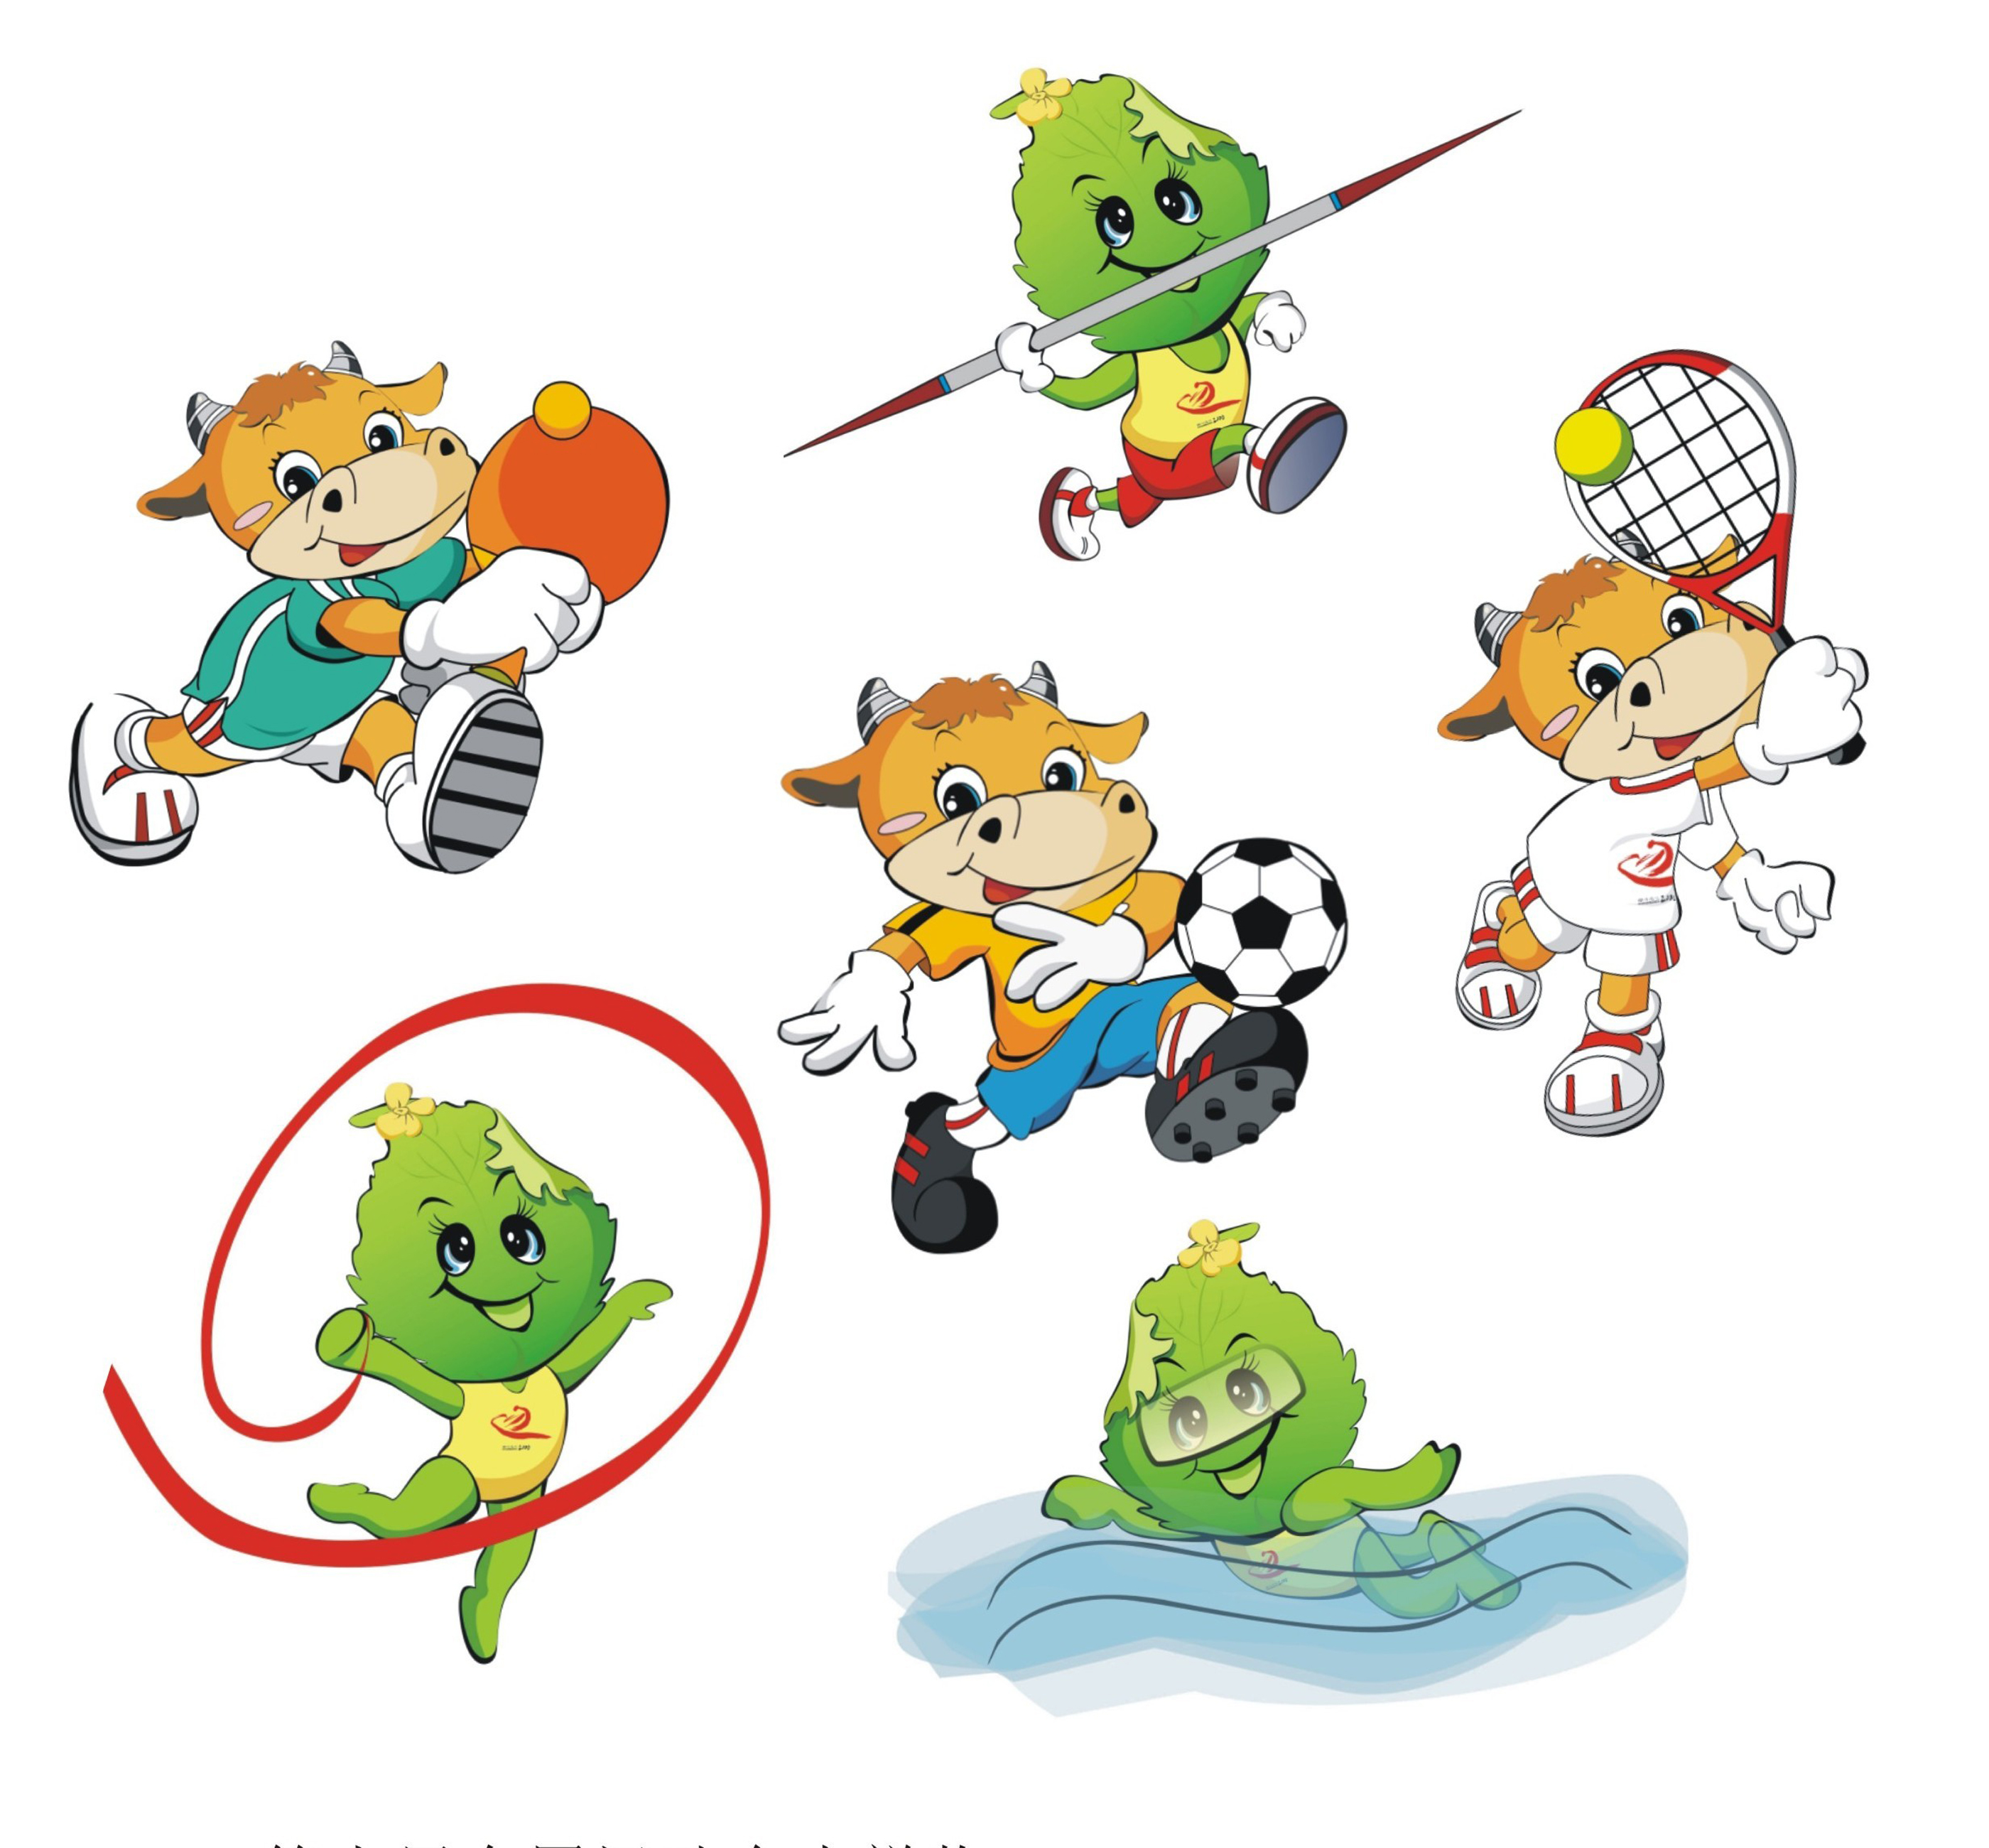 The Tenth Session of the Sichuan Province Sports Meeting Mascot